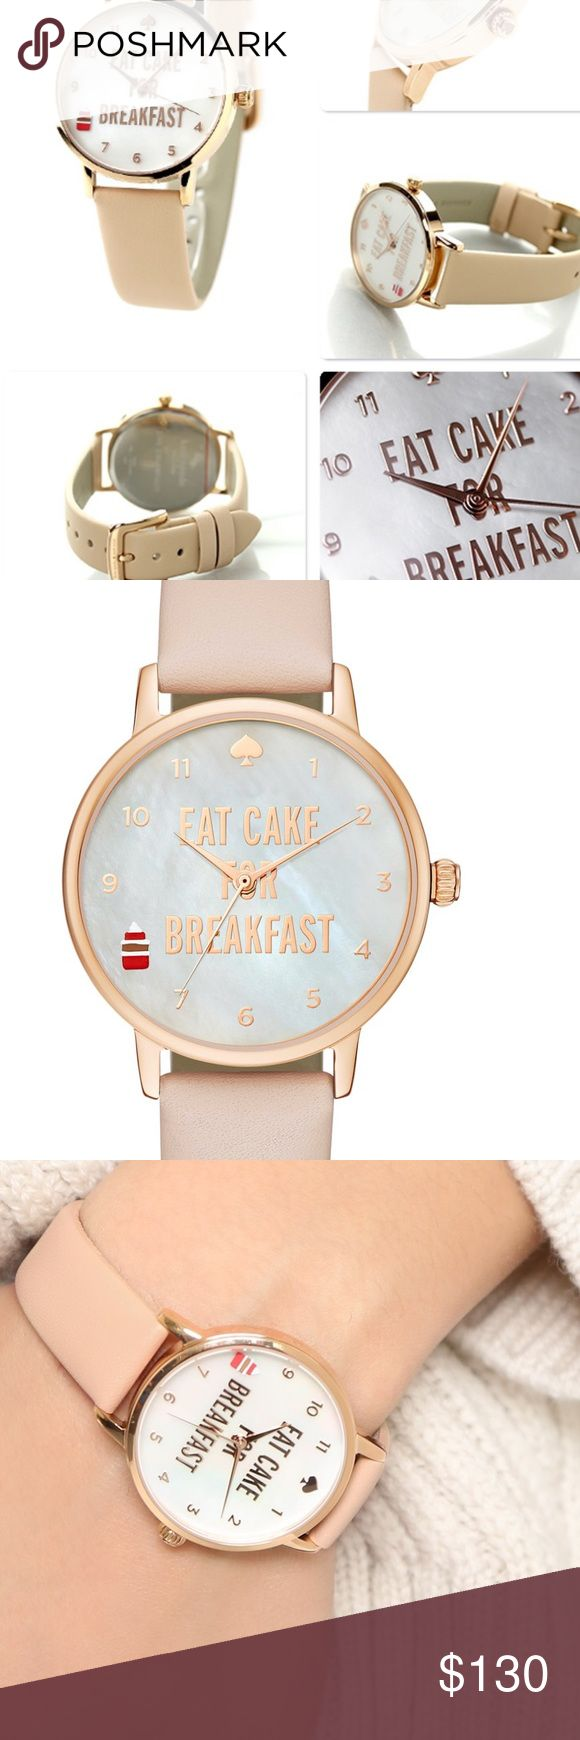 KATE SPADE WATCH 🎉SALE🎉😘 coming next week Coming next week. 175 original price.  Comment if interested. Serious buyers only. Not part of the bundle discount Kate Spade Accessories Watches